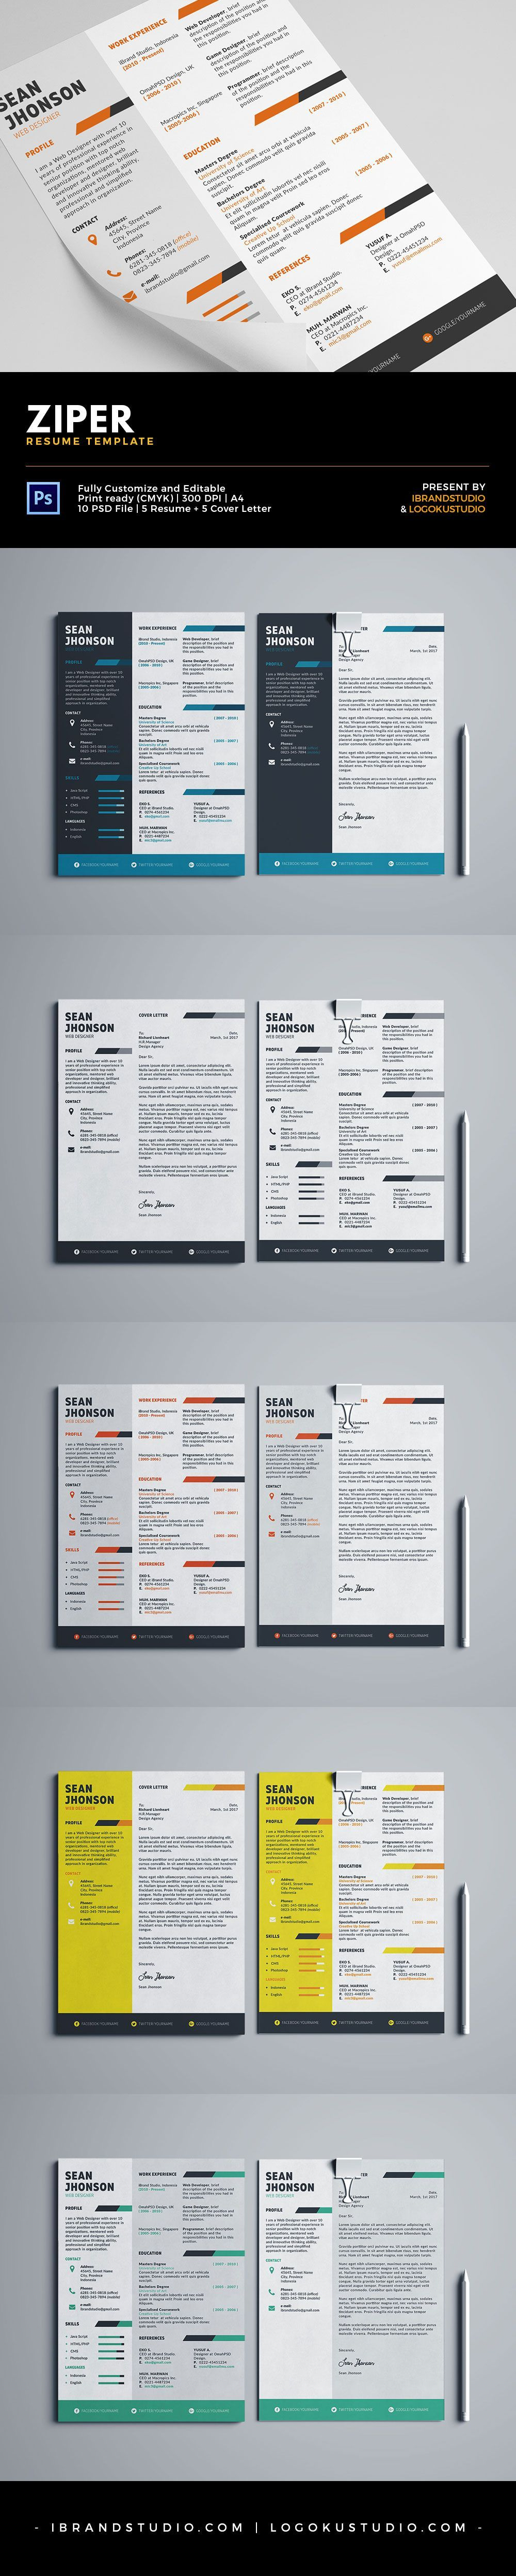 format resume writing%0A Free Ziper Resume Template and Cover Letter    Styles  PSD